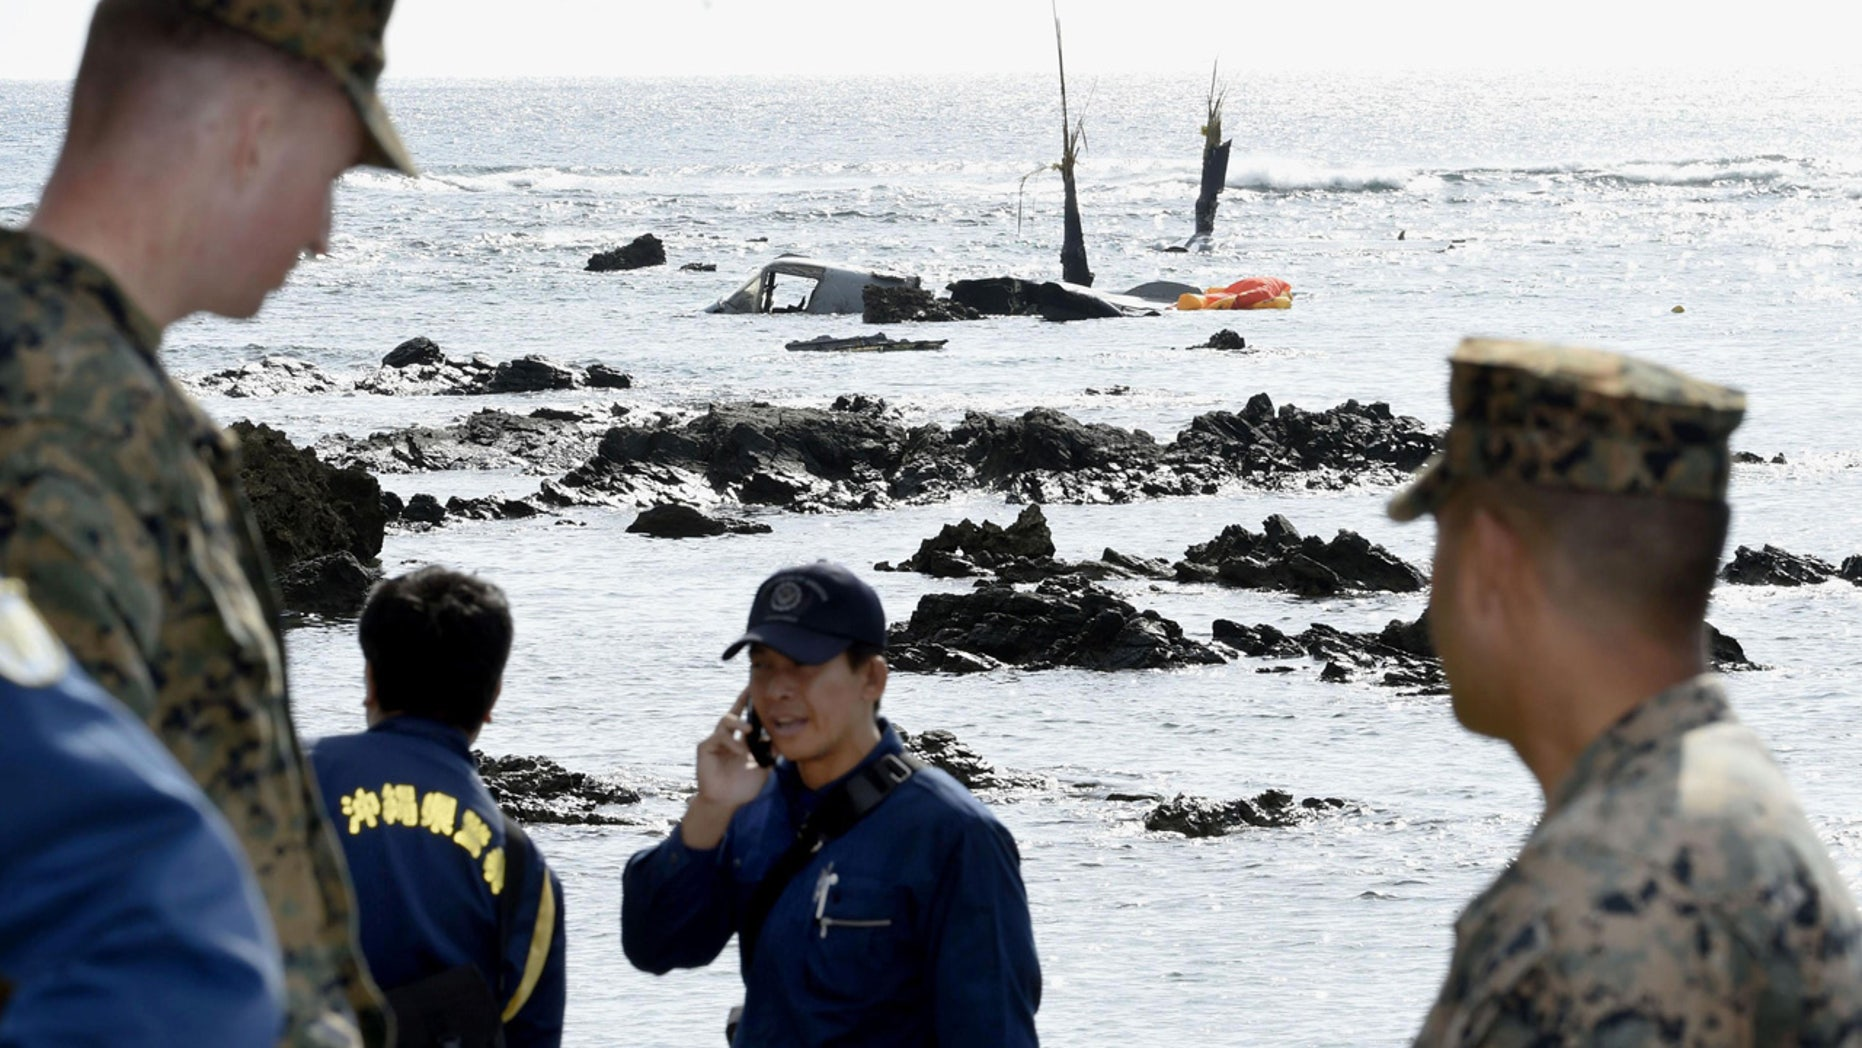 Officers of Okinawa Prefectural Police and the U.S. military investigate the site where debris of the MV-22 Osprey, background, was spotted in shallow waters off Okinawa.